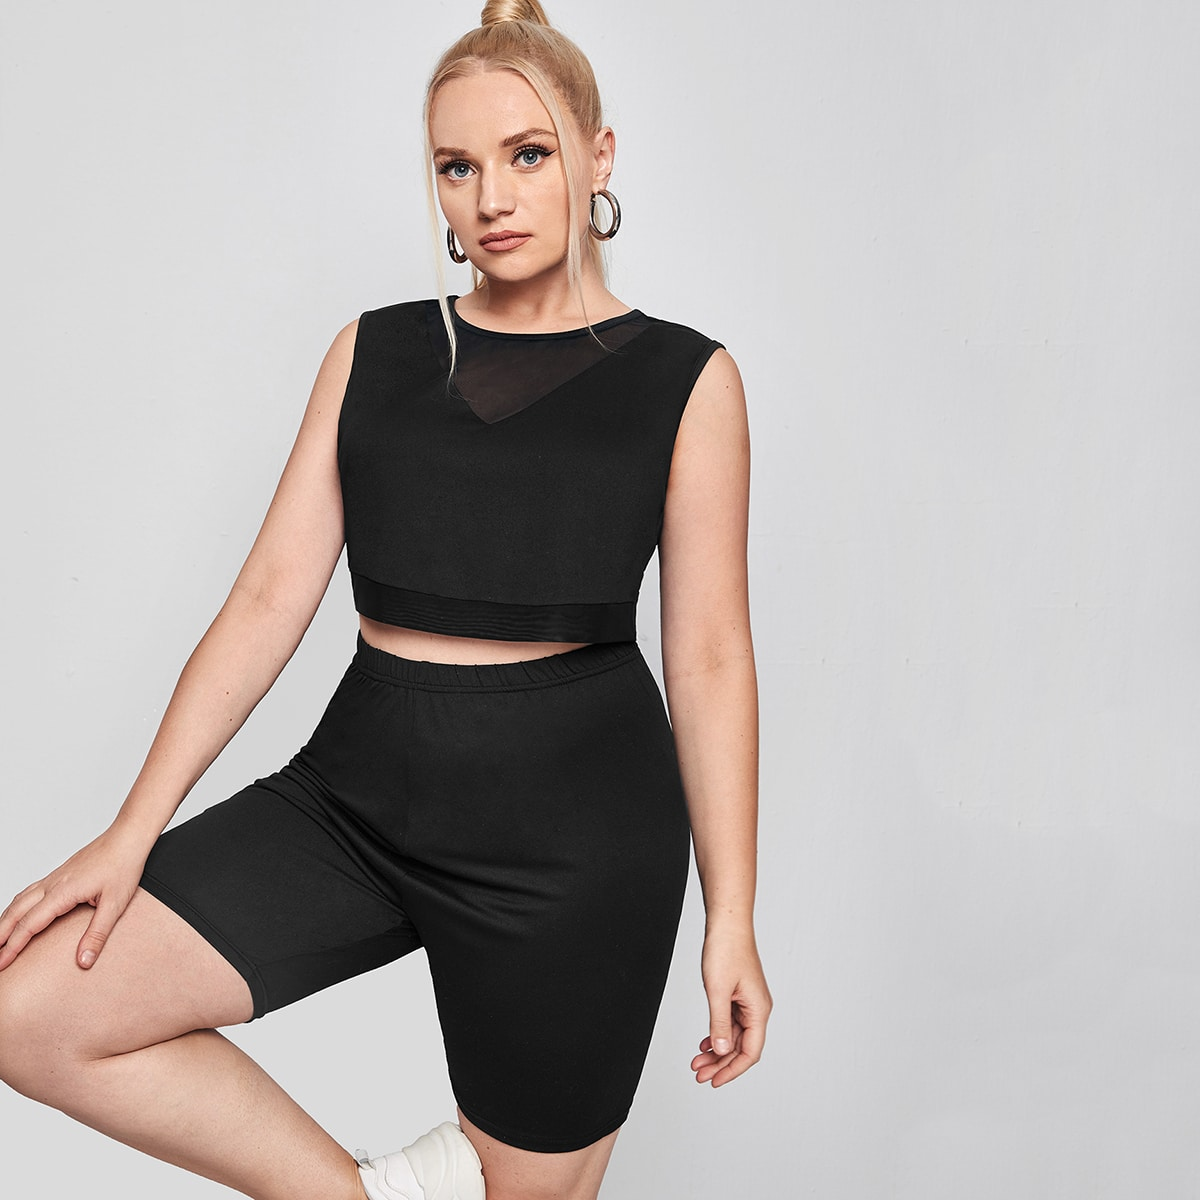 Plus Contrast Mesh Crop Tank Top With Biker Shorts, SHEIN  - buy with discount